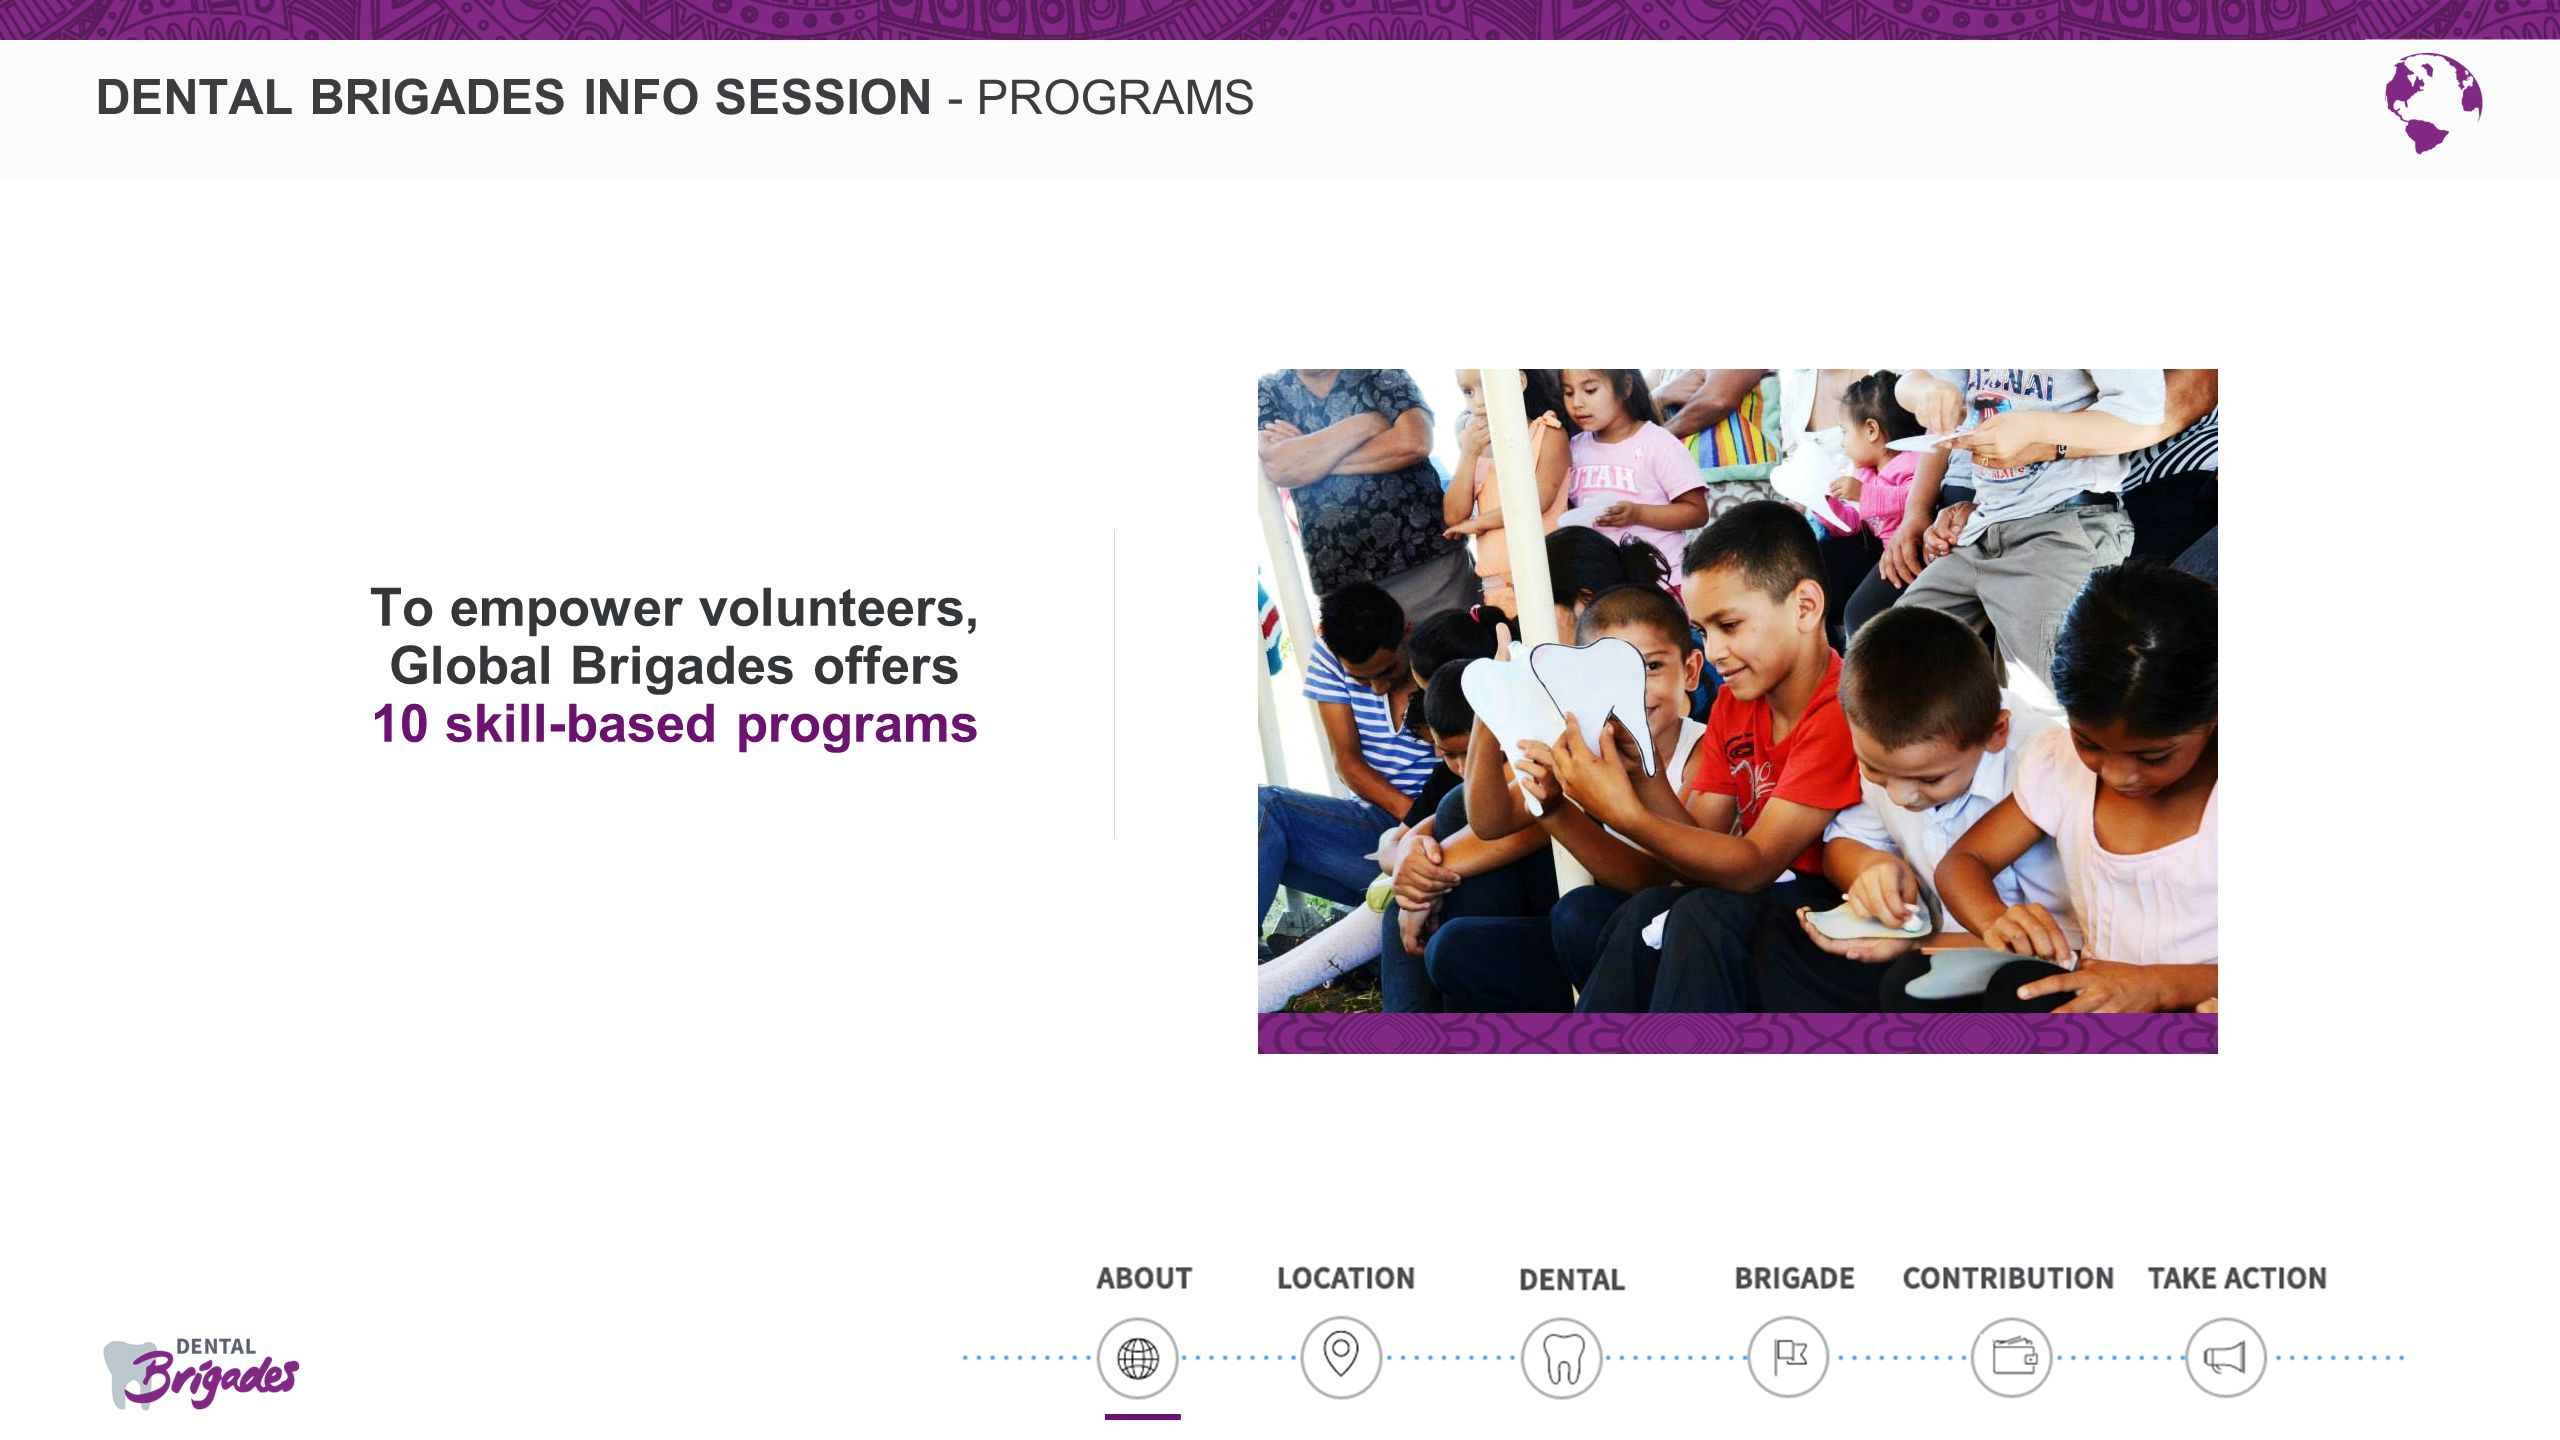 DENTAL BRIGADES INFO SESSION - PROGRAMS To empower volunteers, Global Brigades offers 10 skill-based programs